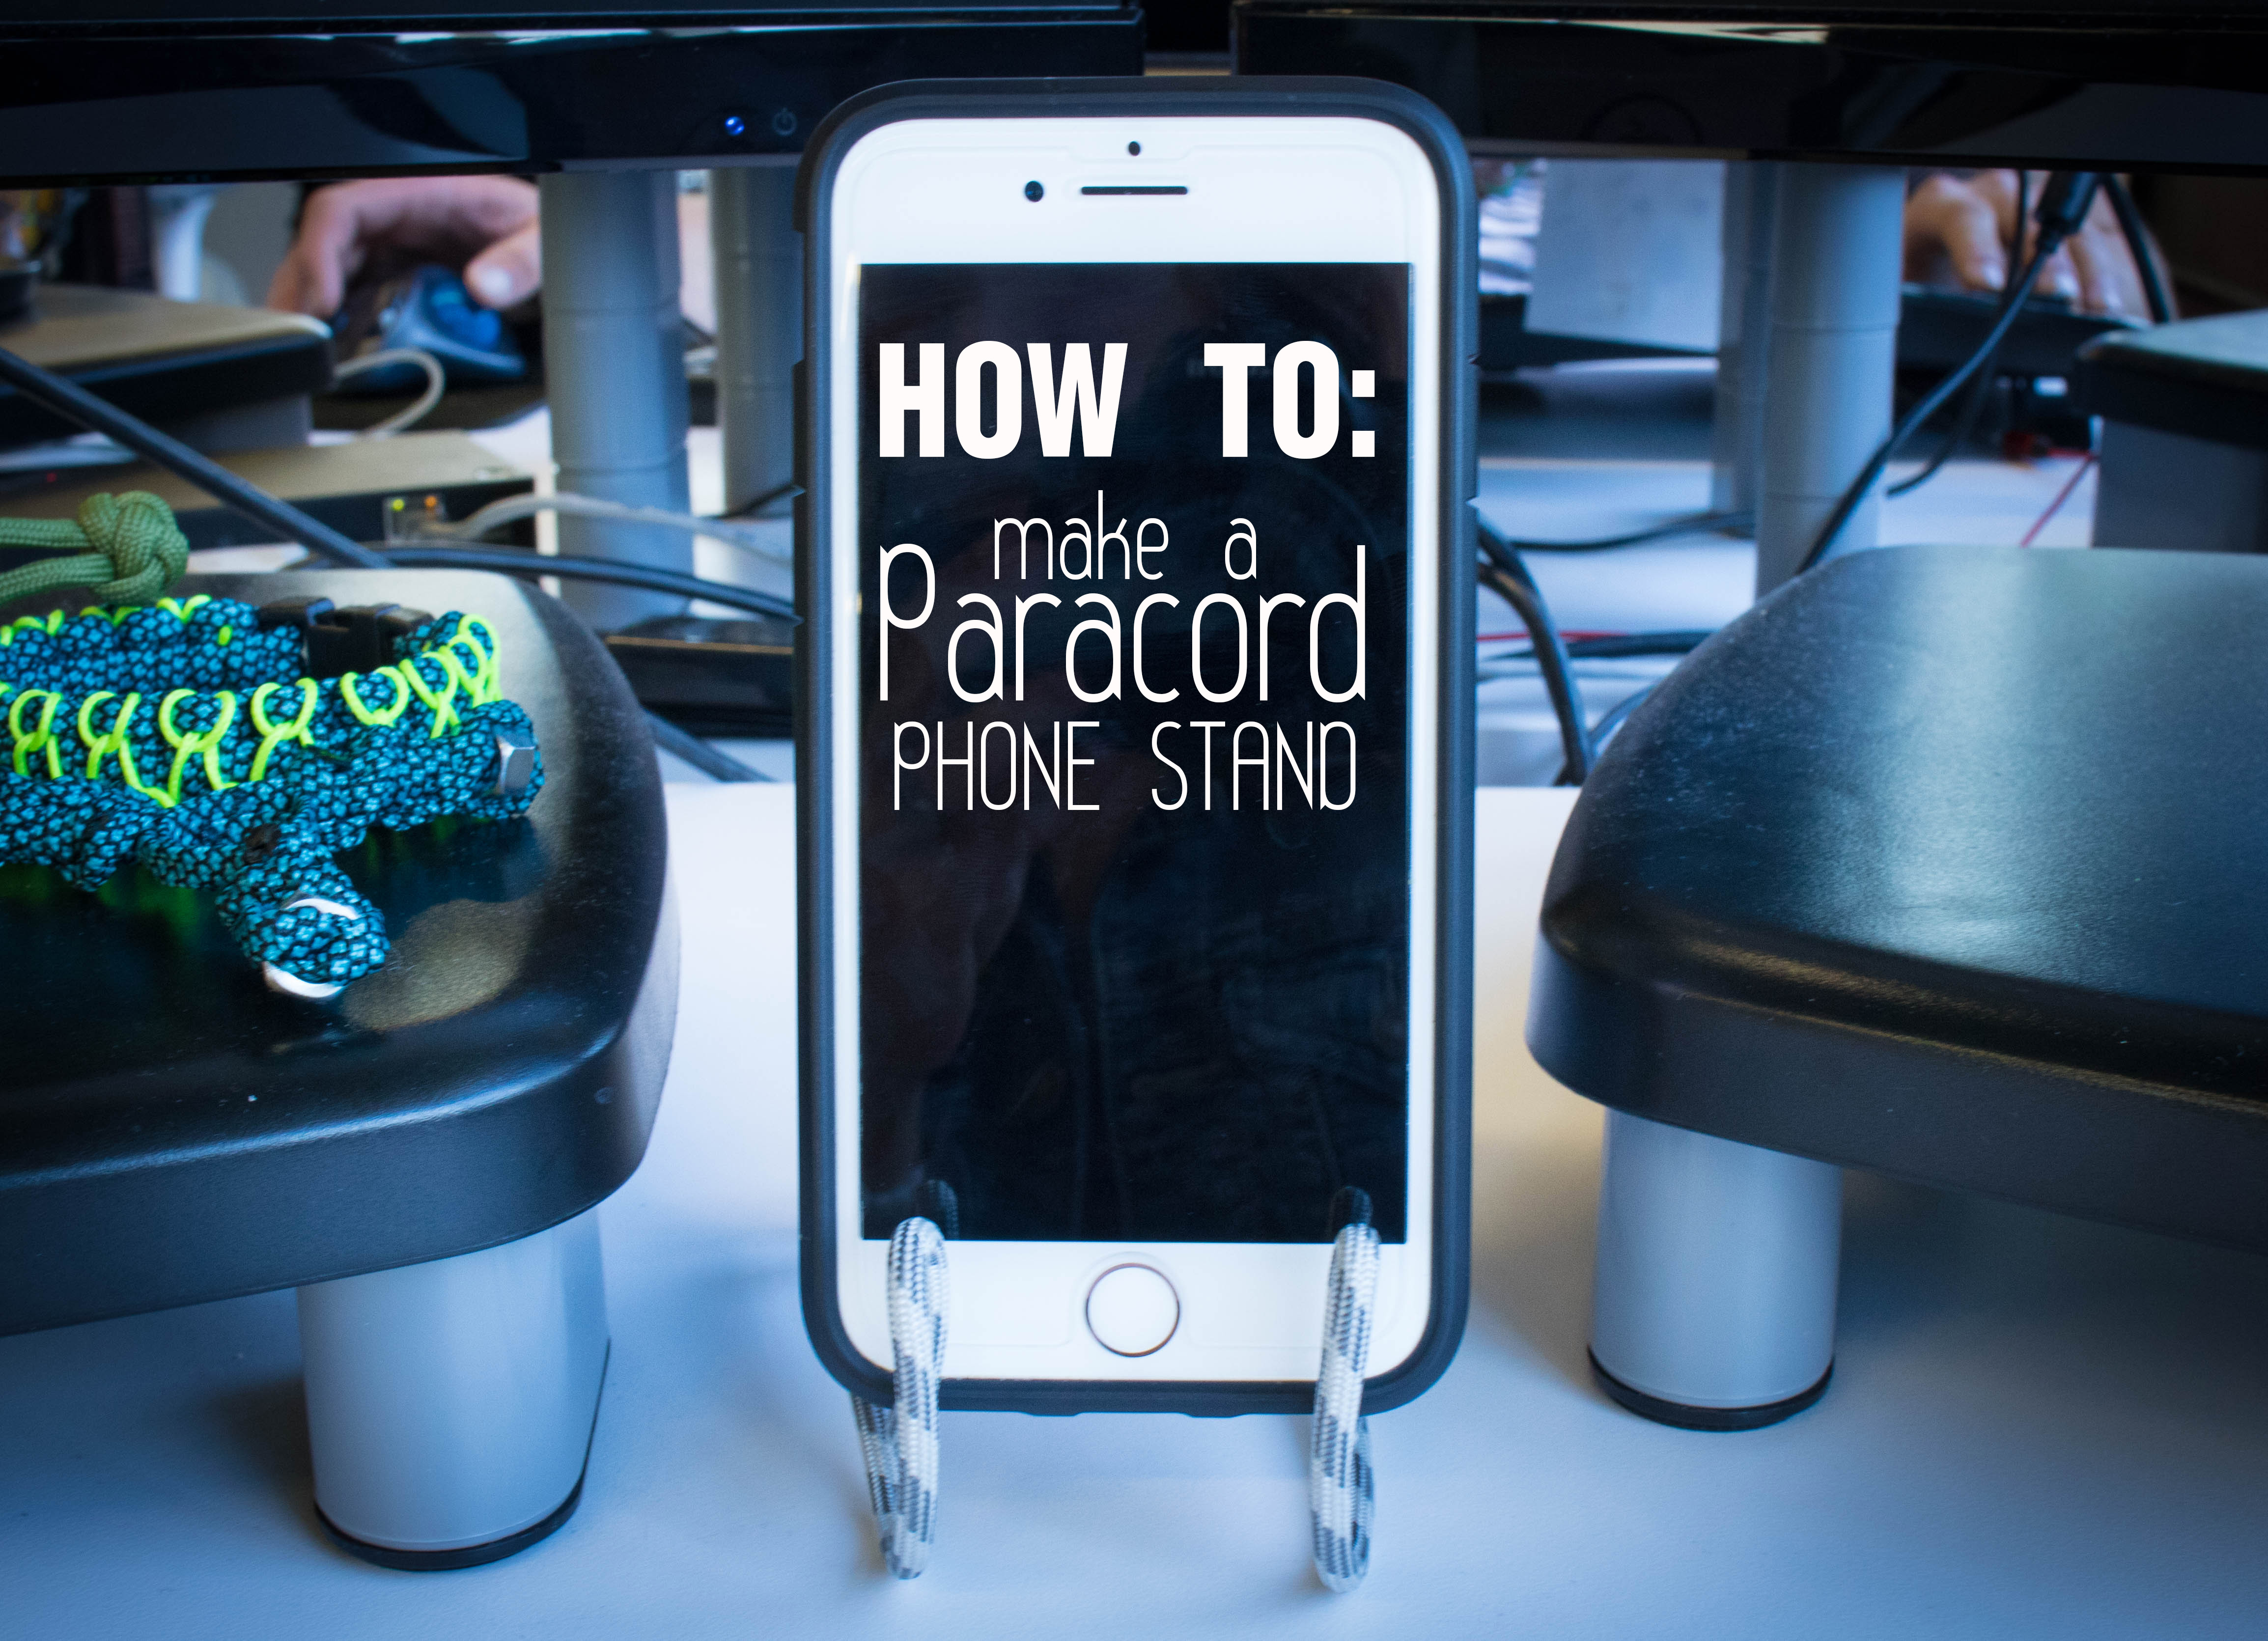 How to Make a Paracord Phone Stand